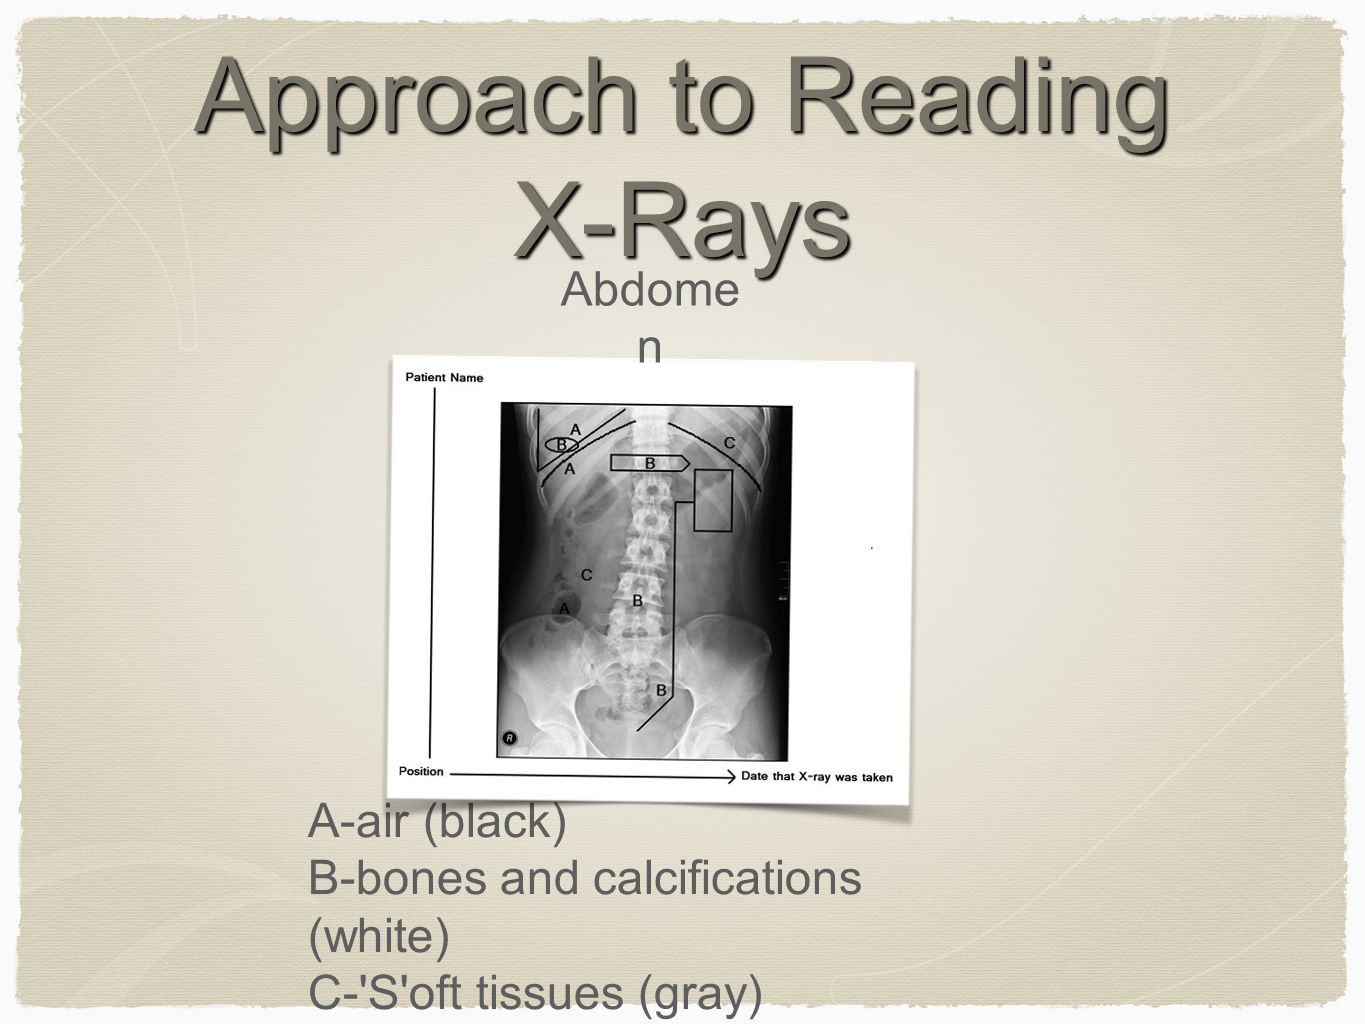 Approach to Reading X-Rays A-air (black) B-bones and calcifications (white) C- S oft tissues (gray) Abdome n